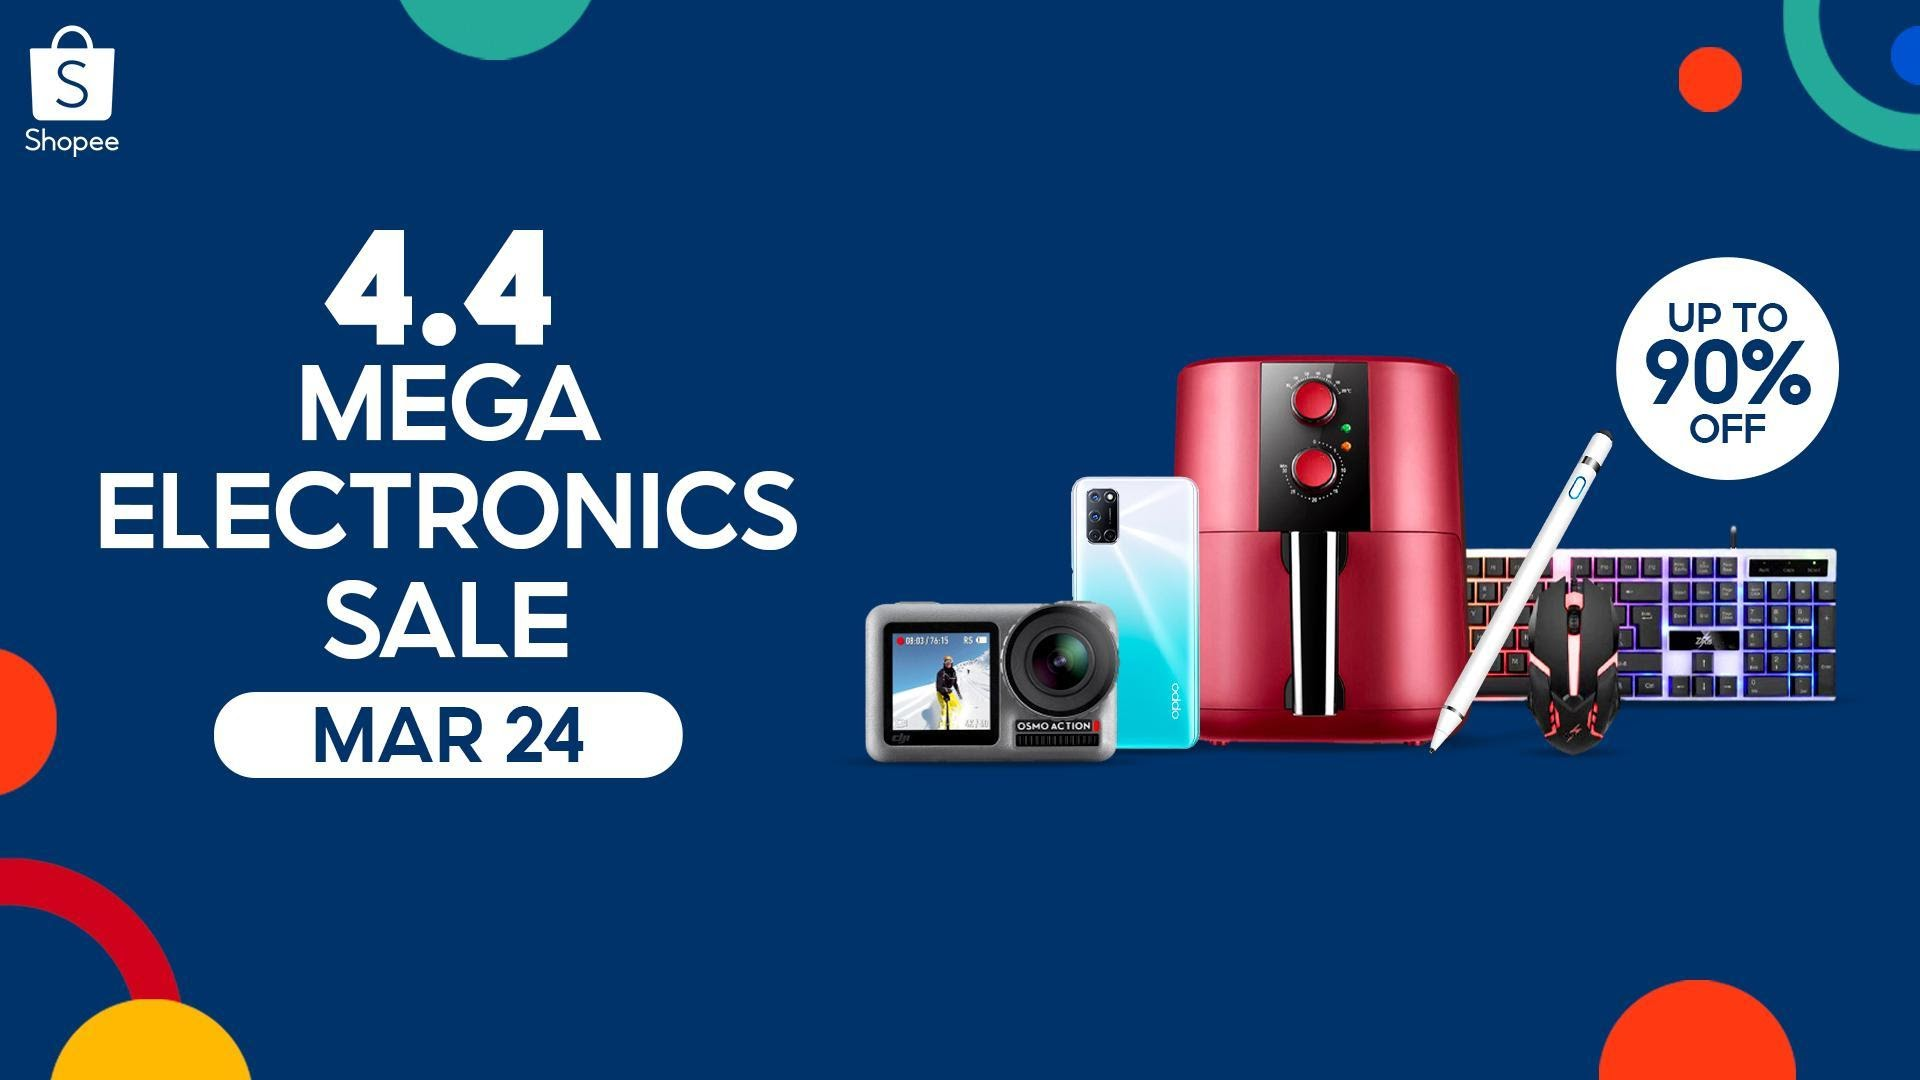 Get all your hobby-related gadgets on sale at Shopee's 4.4 Mega Electronics Sale